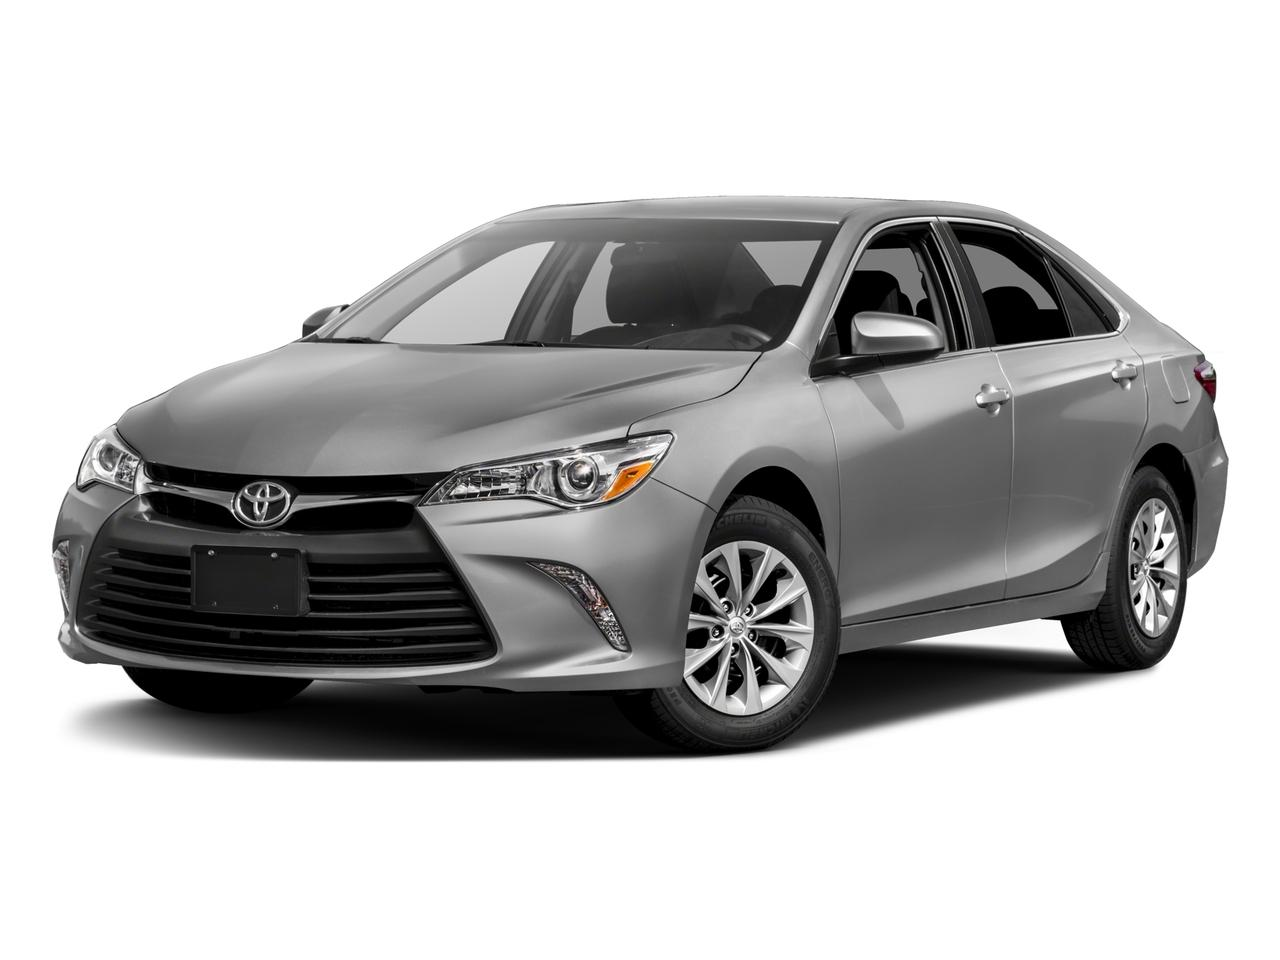 2017 Toyota Camry Vehicle Photo in Lake Katrine, NY 12449